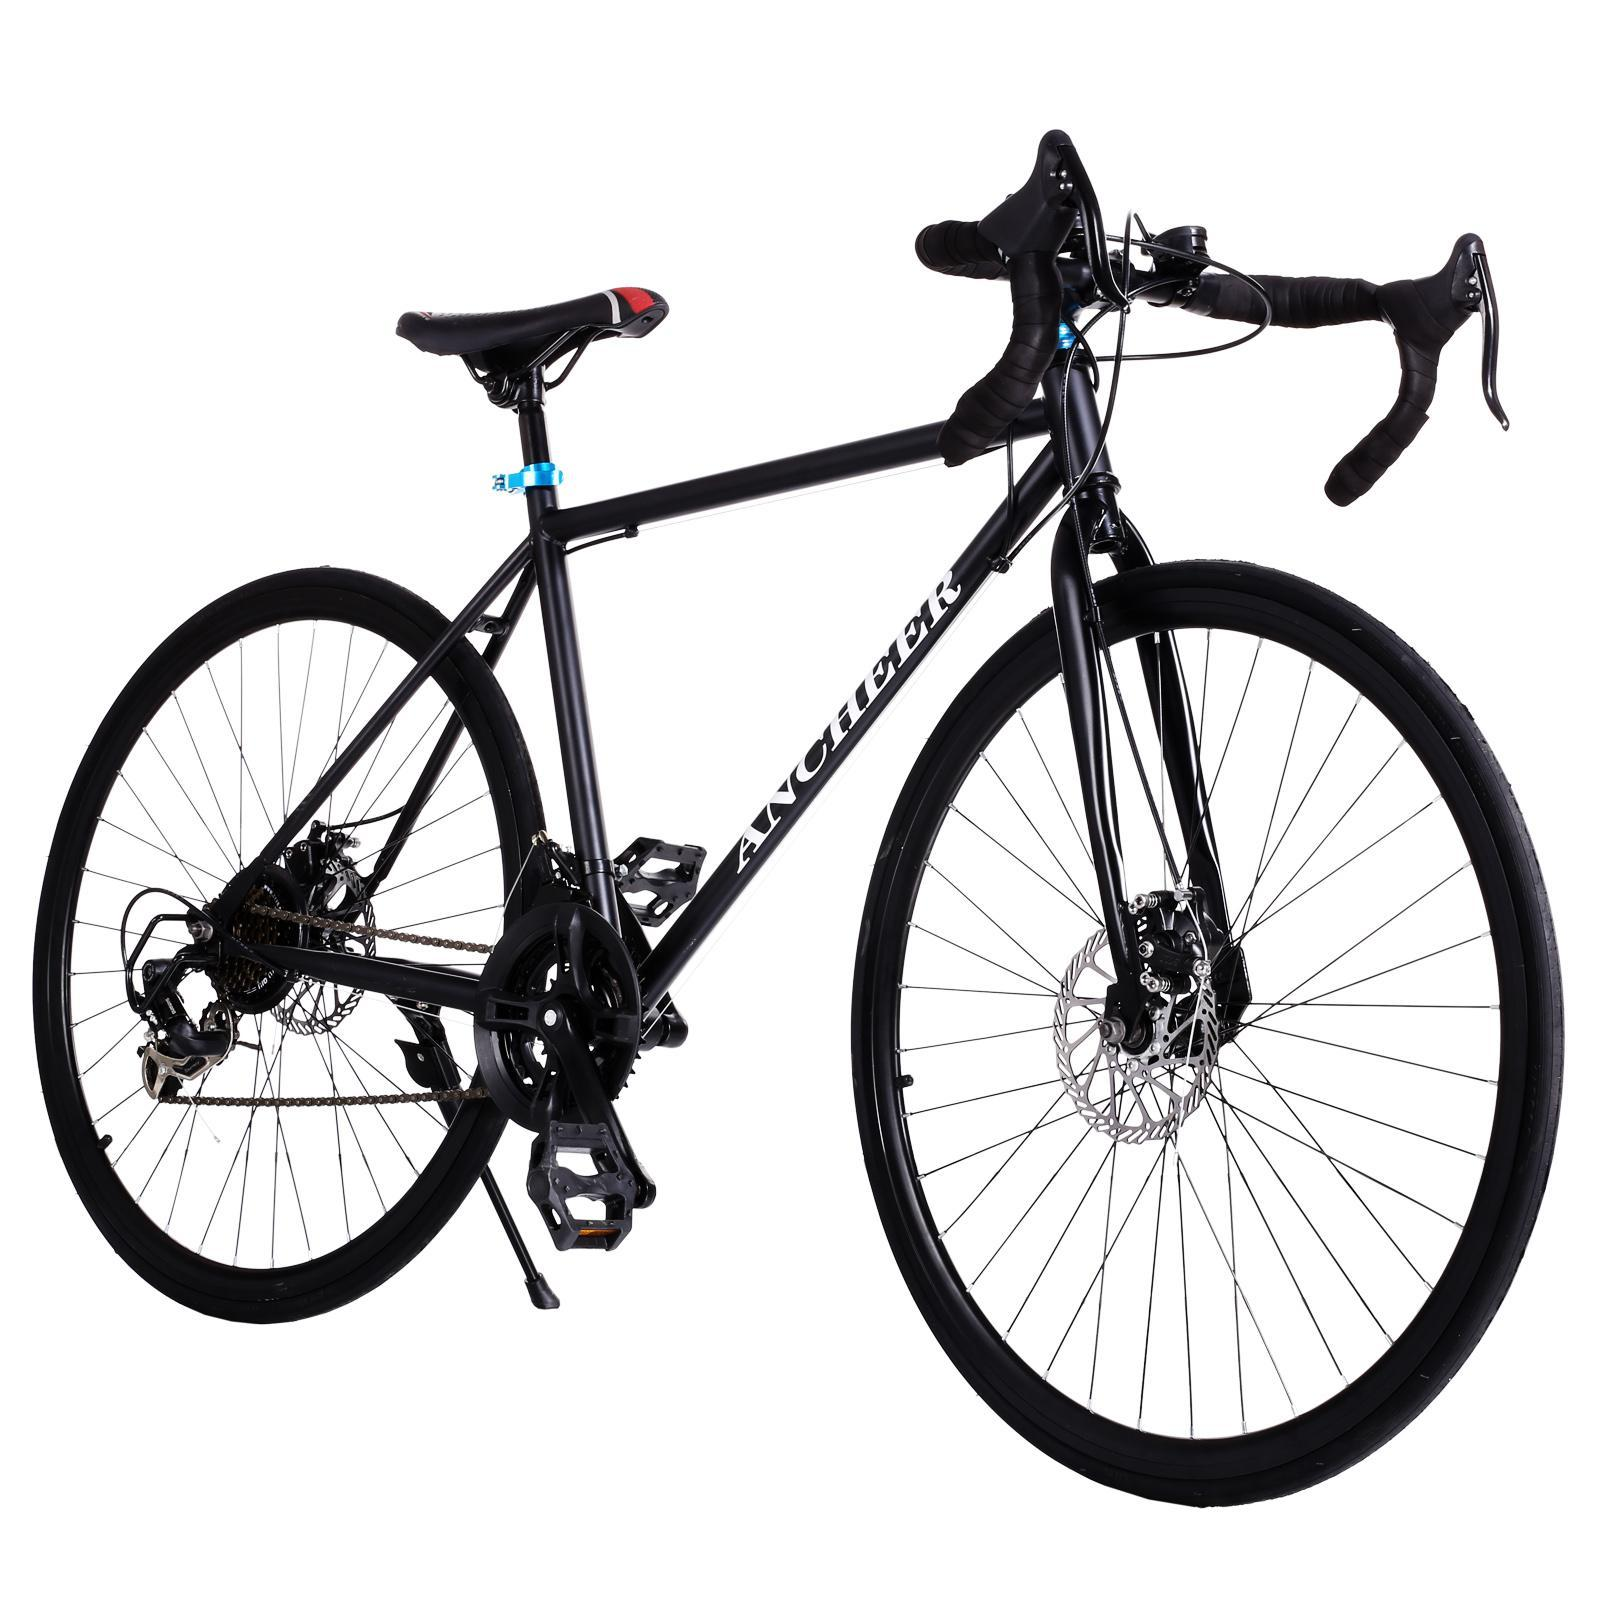 "26"" Bike Carbon Steel Frame 700c  Men's Road Bike  21 Speed Bicycle for Tall Riders SPHP"